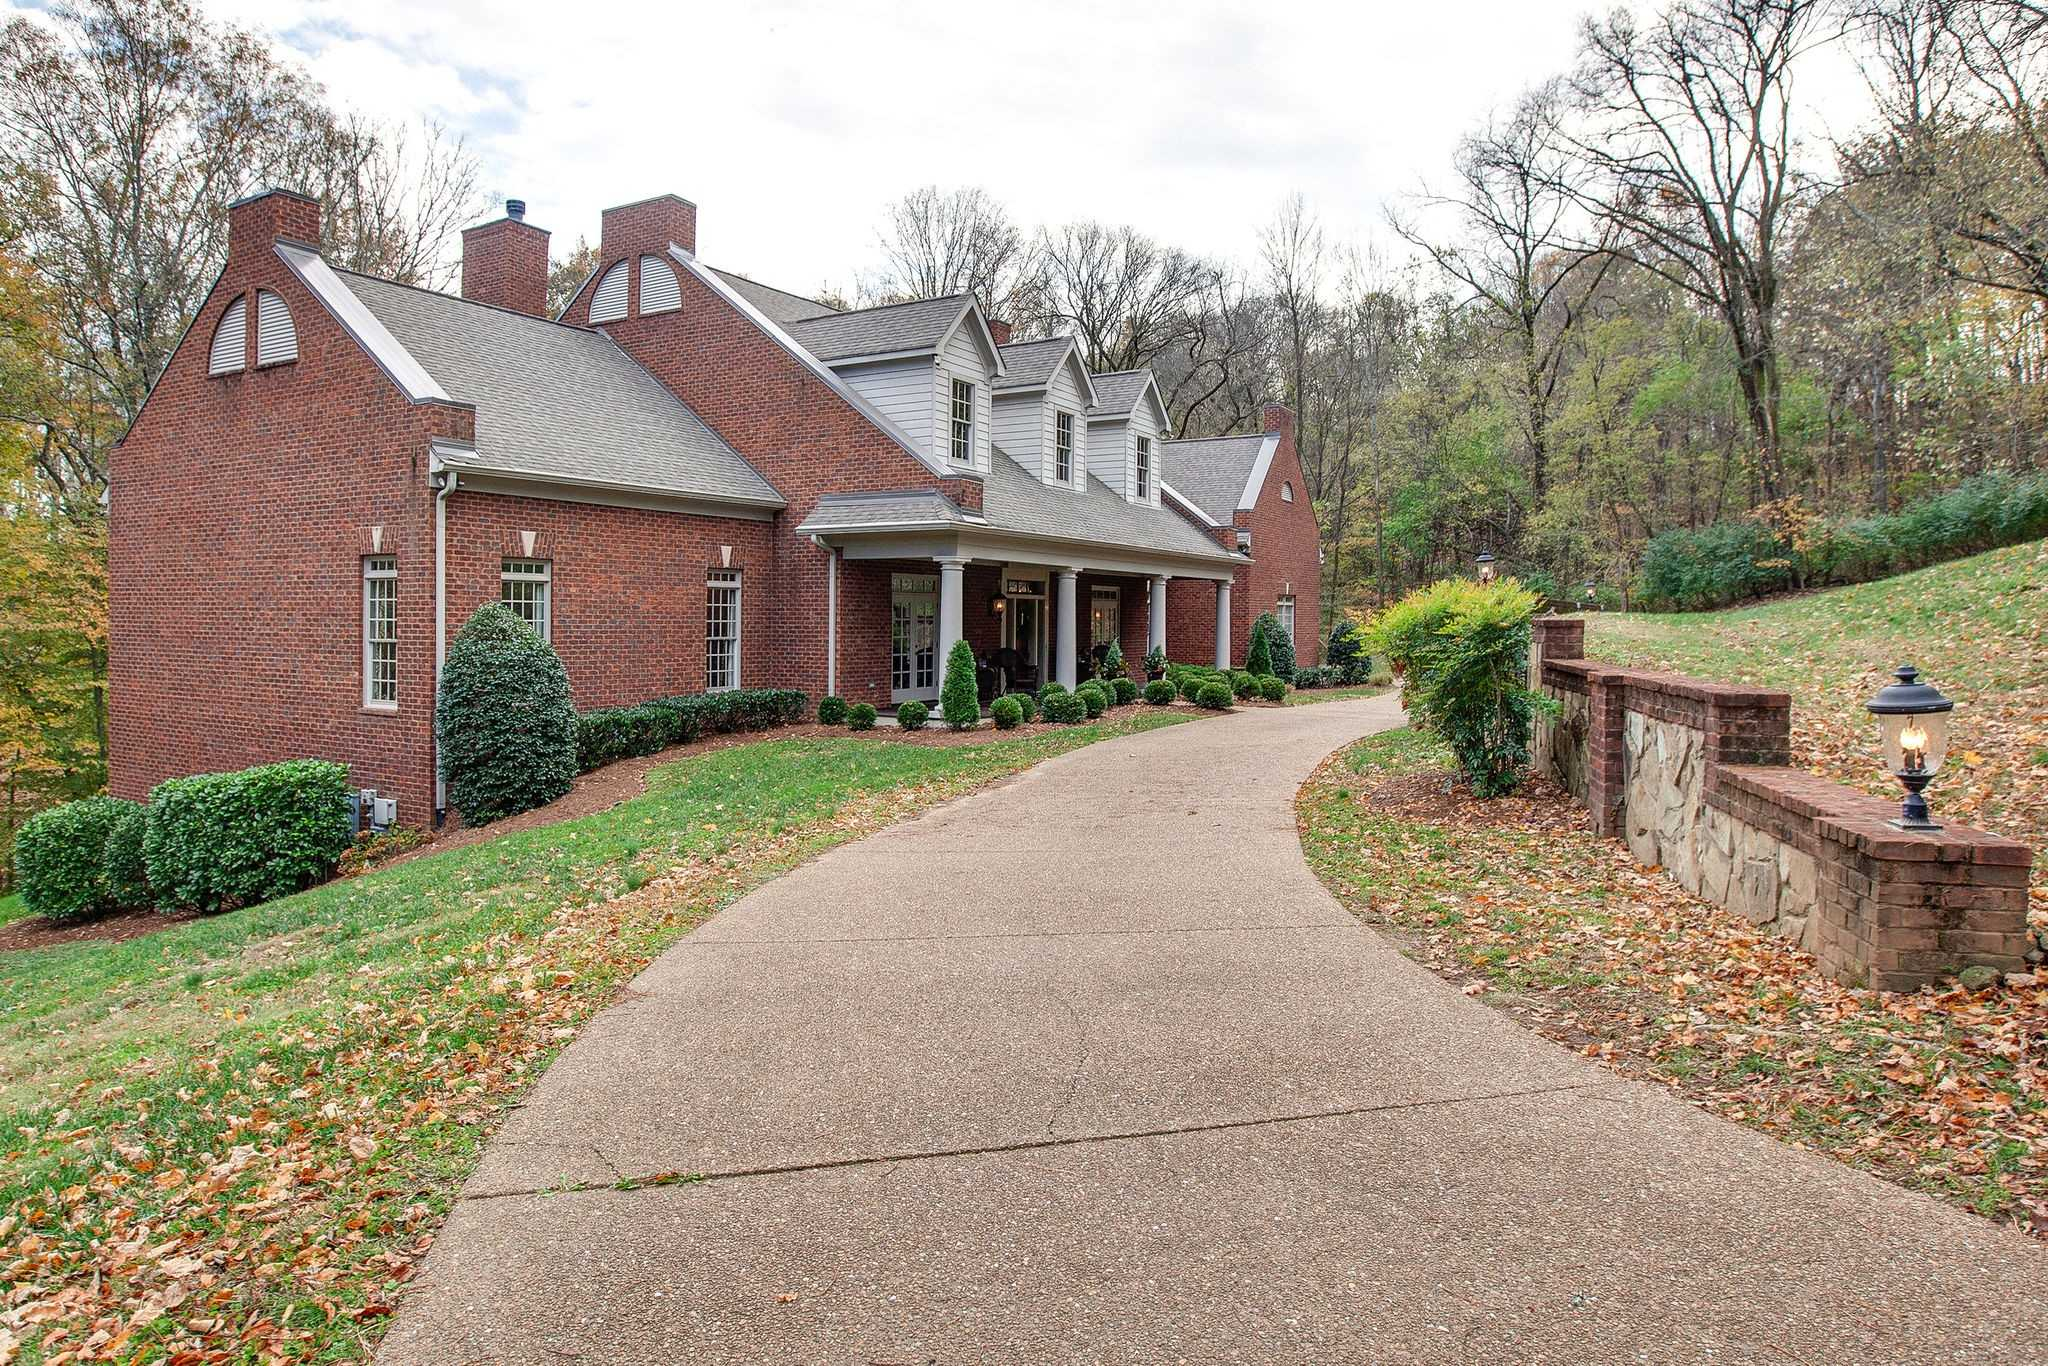 $2,599,000 - 5Br/6Ba -  for Sale in Cherry Valley, Franklin